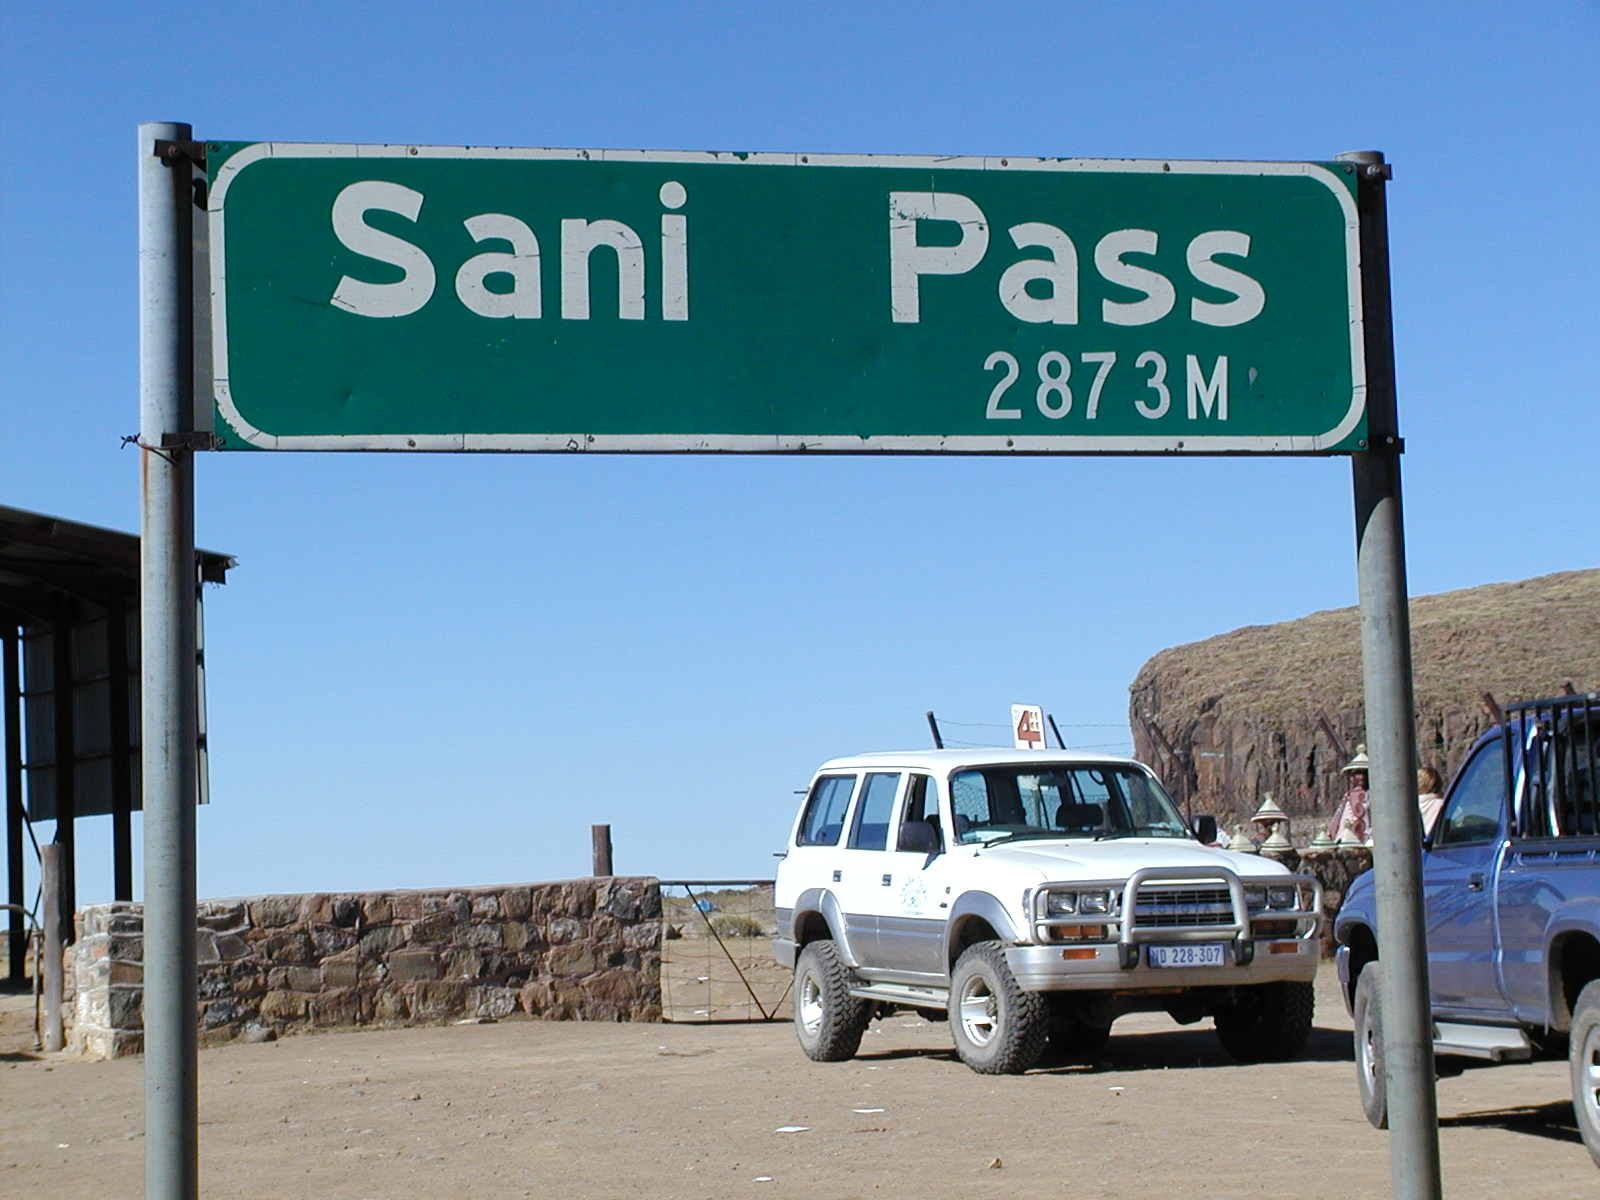 Beyond Sani Pass